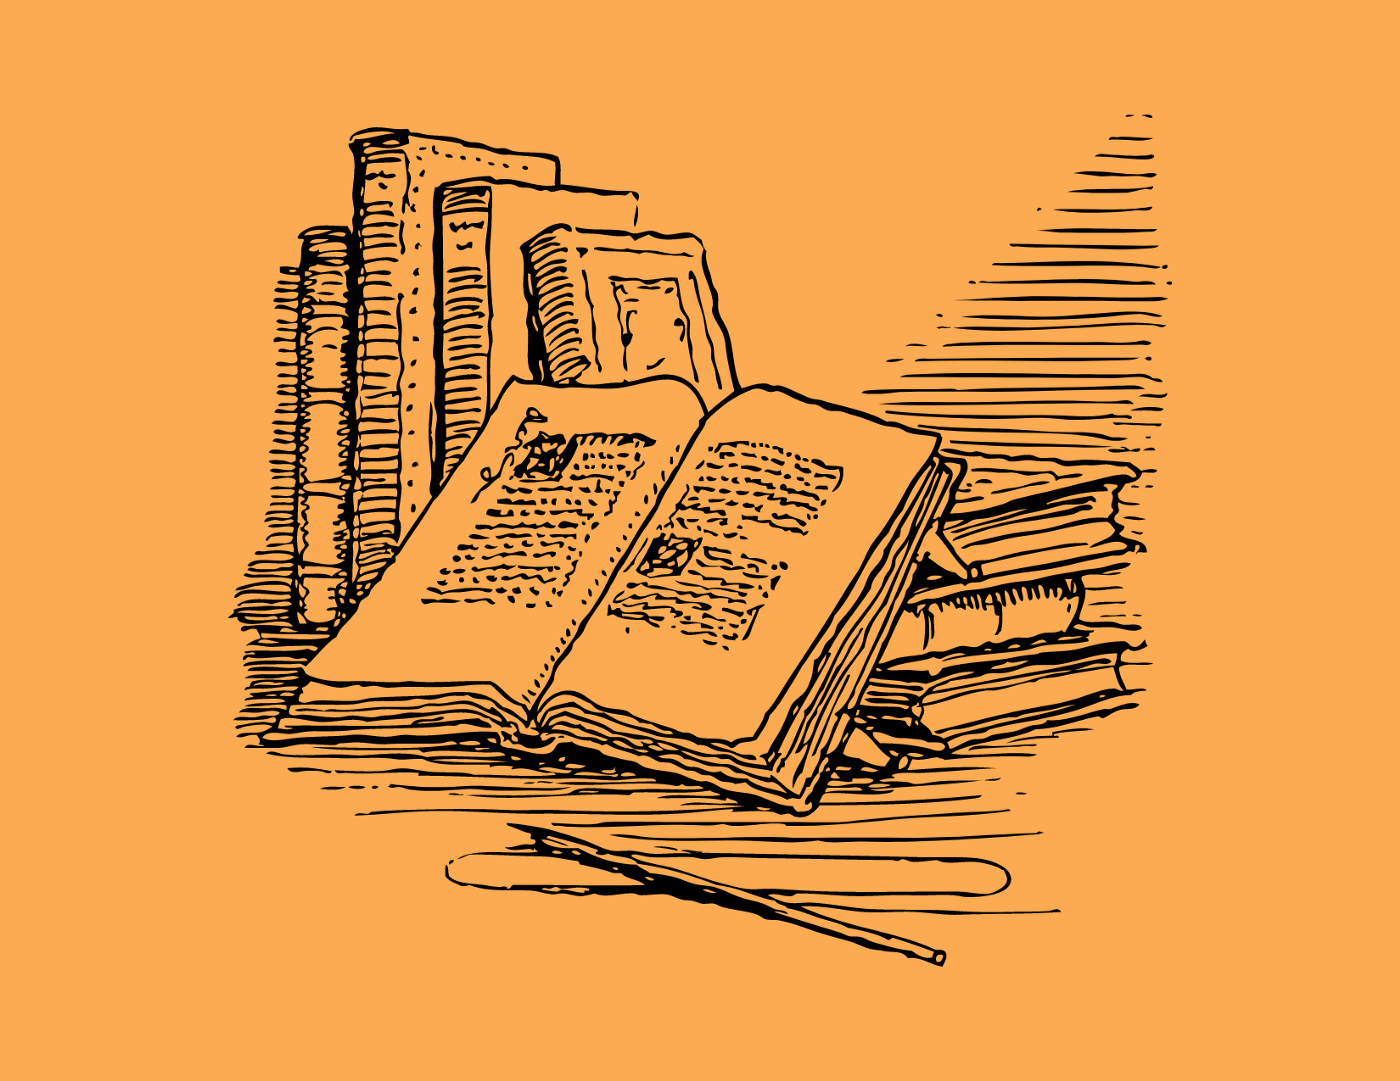 """Black and white """"outline"""" image of an open book among many novels. Pen nearby."""